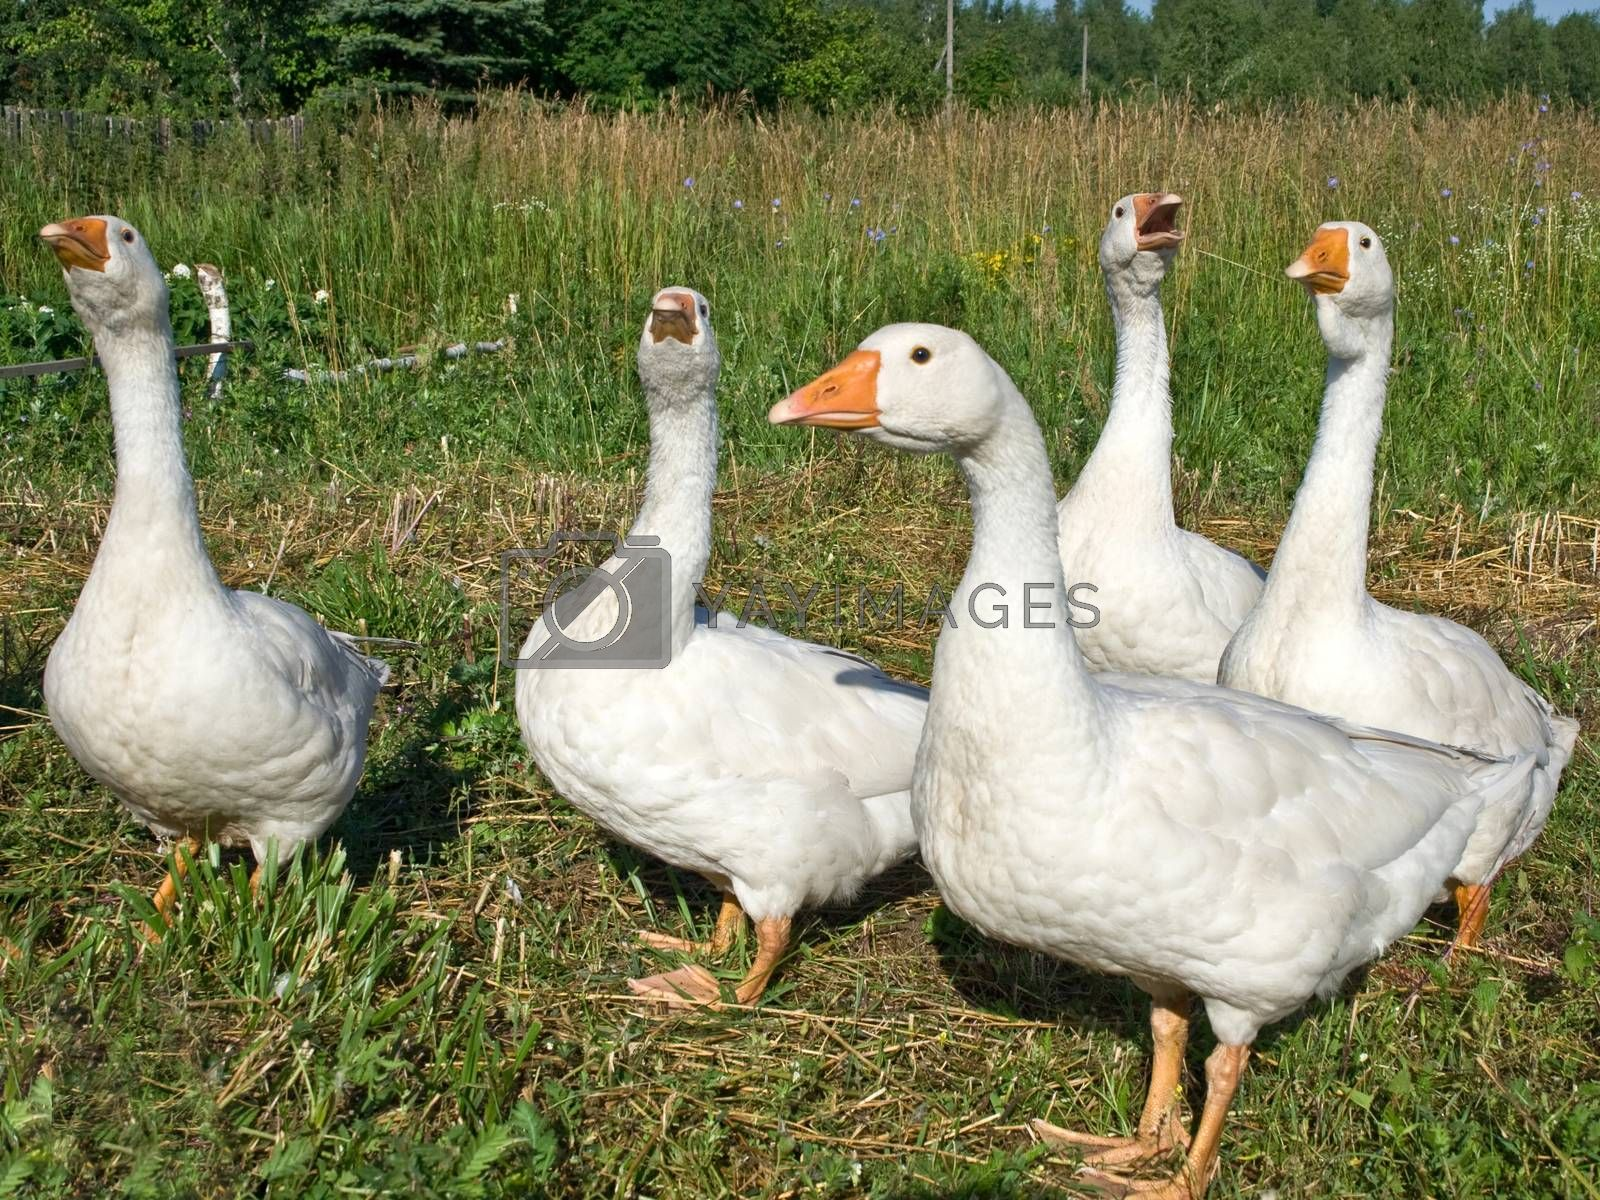 Poultry the goose on a years meadow on a farm